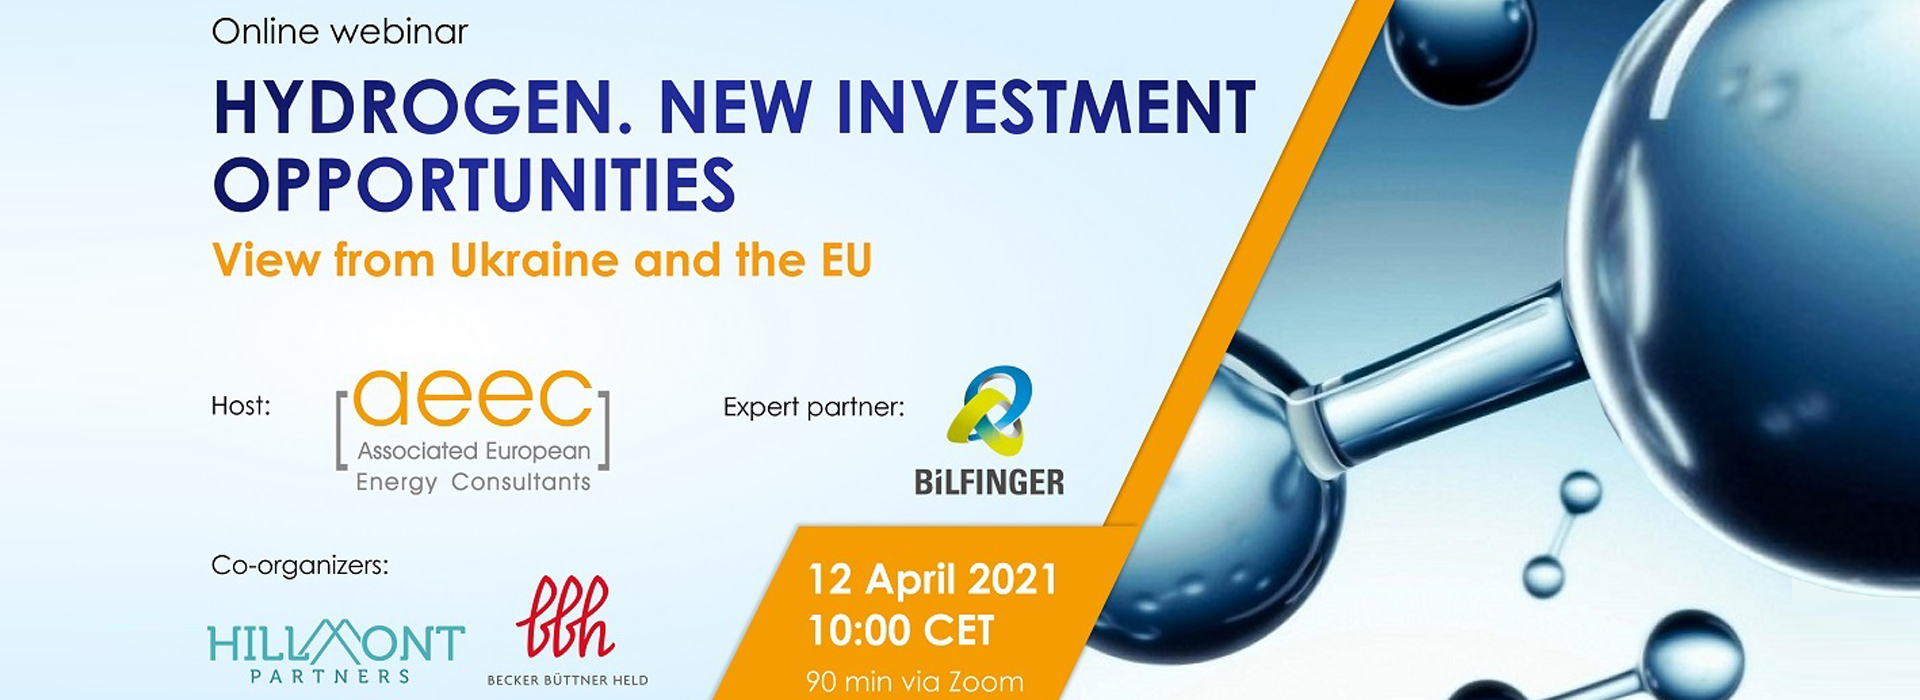 Hydrogen. New Investment Opportunities. View from Ukraine and the EU